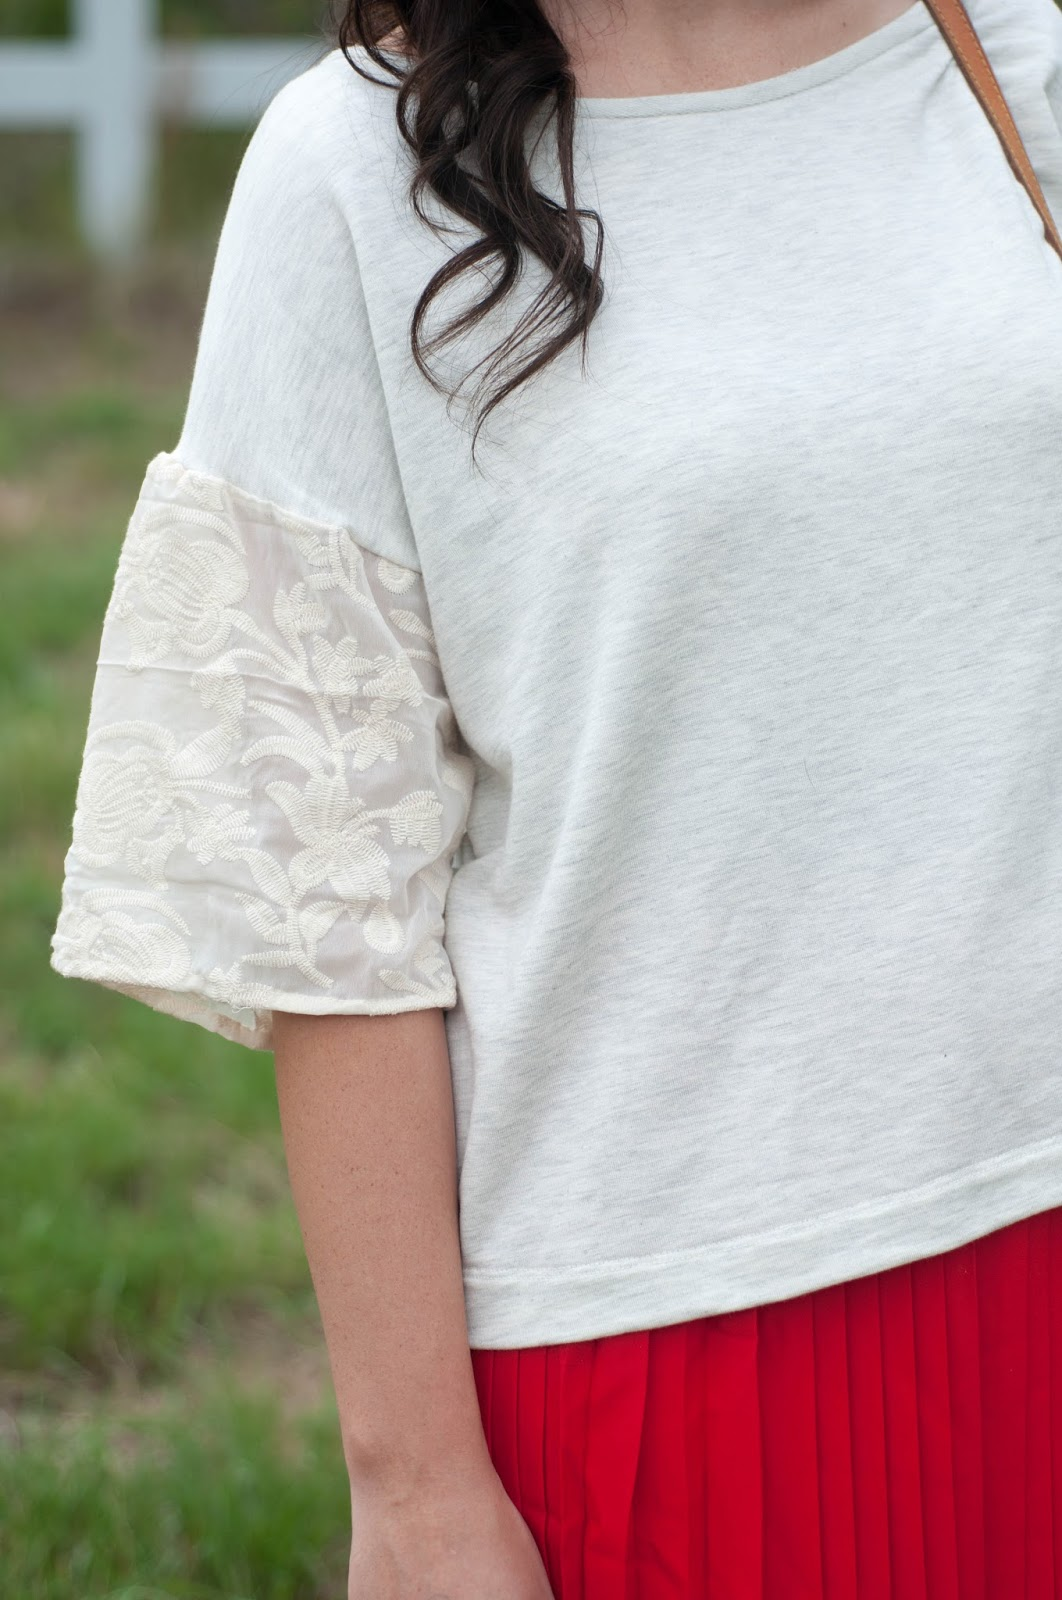 lace sleeves, big sleeves, anthropologie top, anthropologie ootd, lands end skirt, curly brown hair